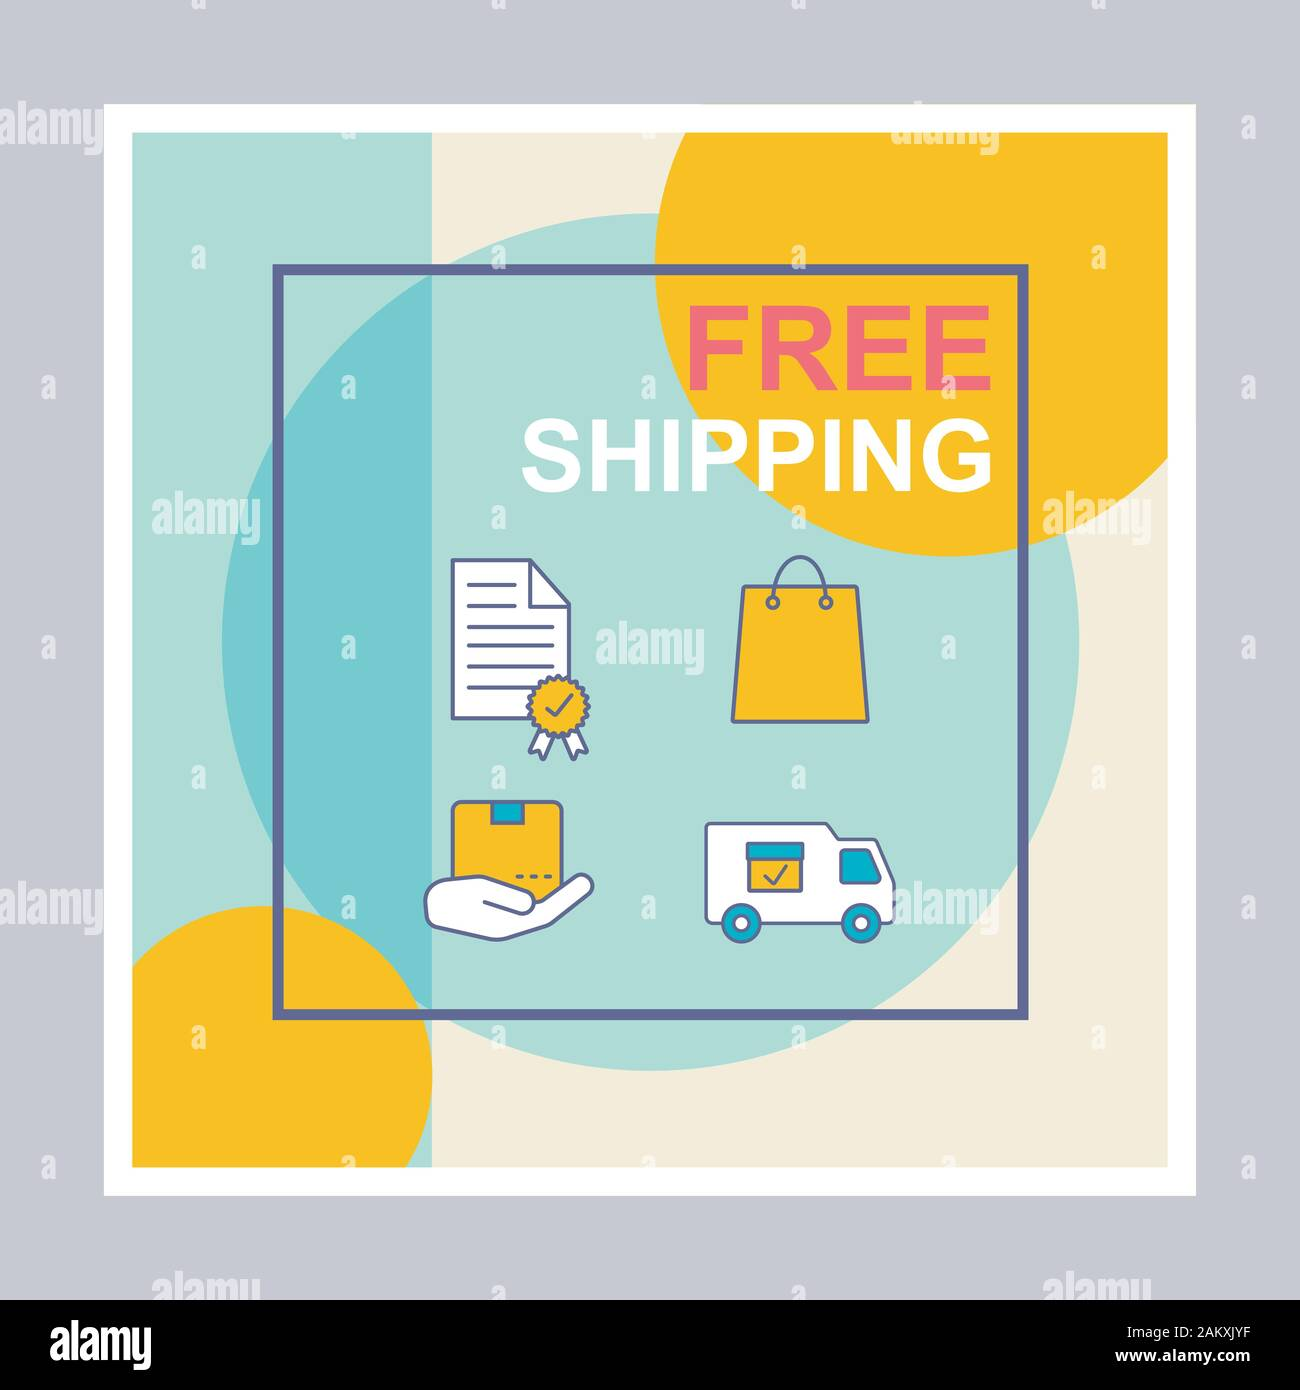 Free Shipping Social Media Posts Mockup Parcel Delivery Advertising Web Banner Design Template Social Media Booster Content Layout Isolated Promo Stock Vector Image Art Alamy